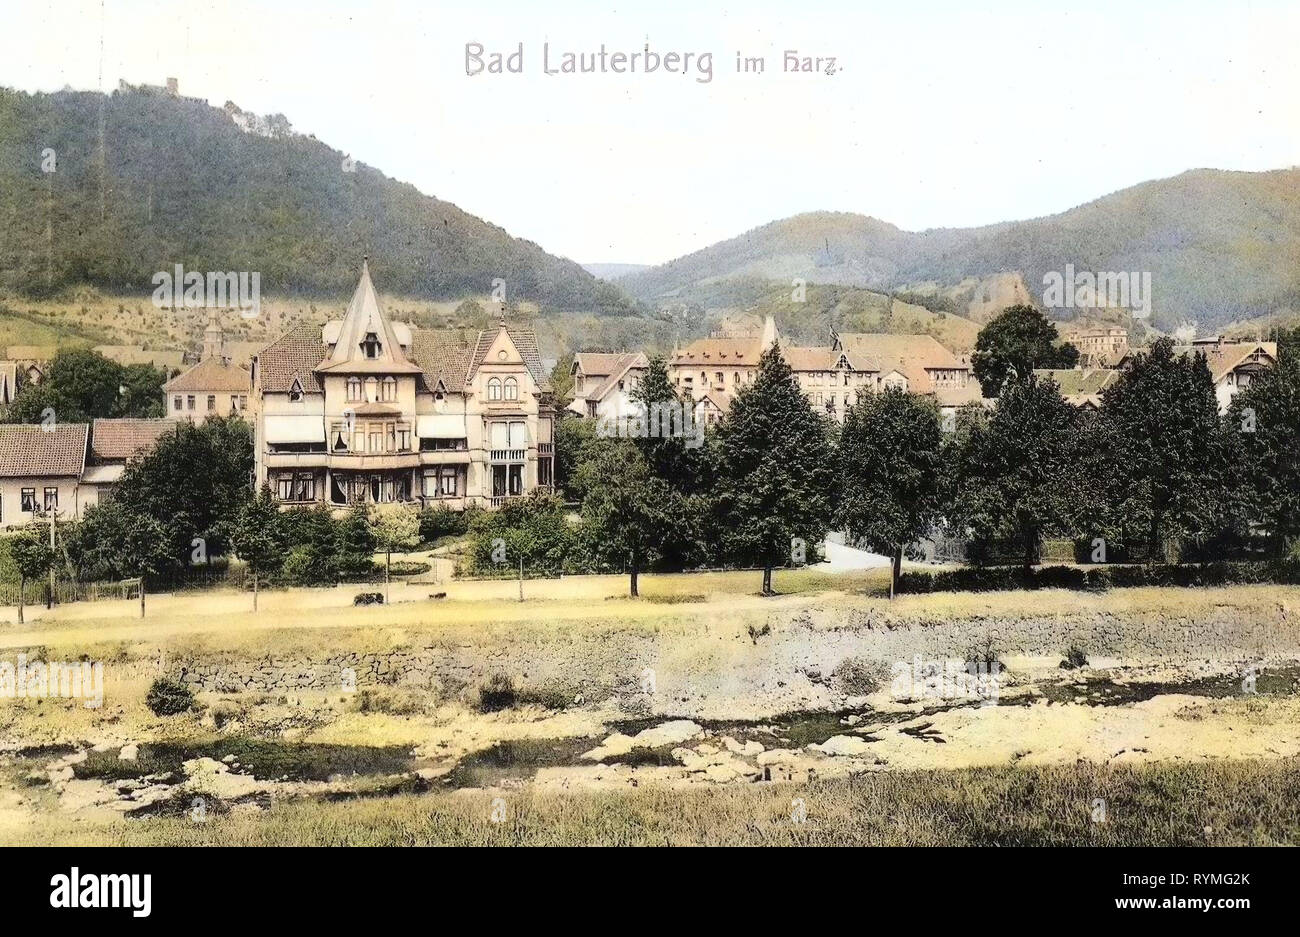 Bad Lauterberg Bilder Buildings In Lower Saxony Bad Lauterberg Im Harz 1907